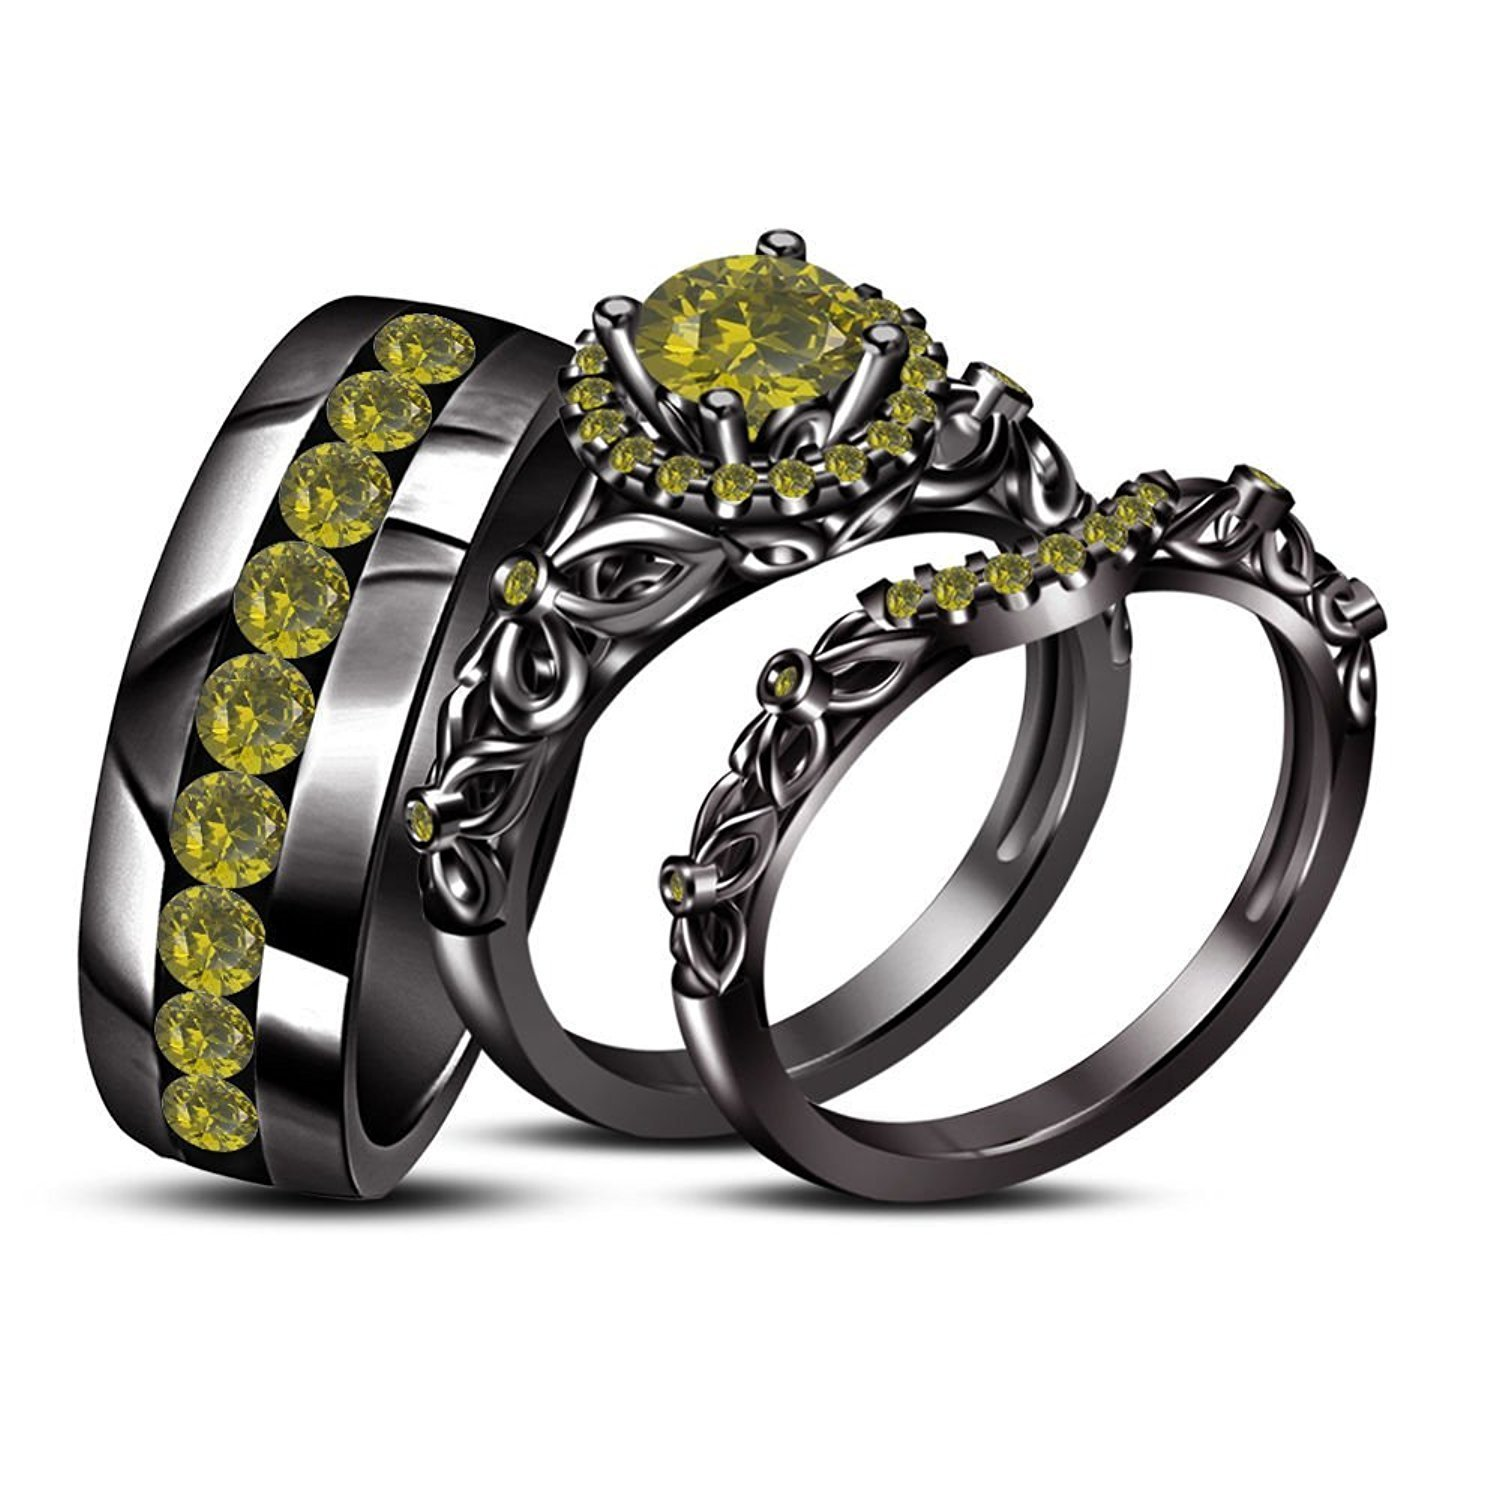 His Her Mens Women's Peridot 925 Silver 14k Black GP Trio Ring Set Free Shipping